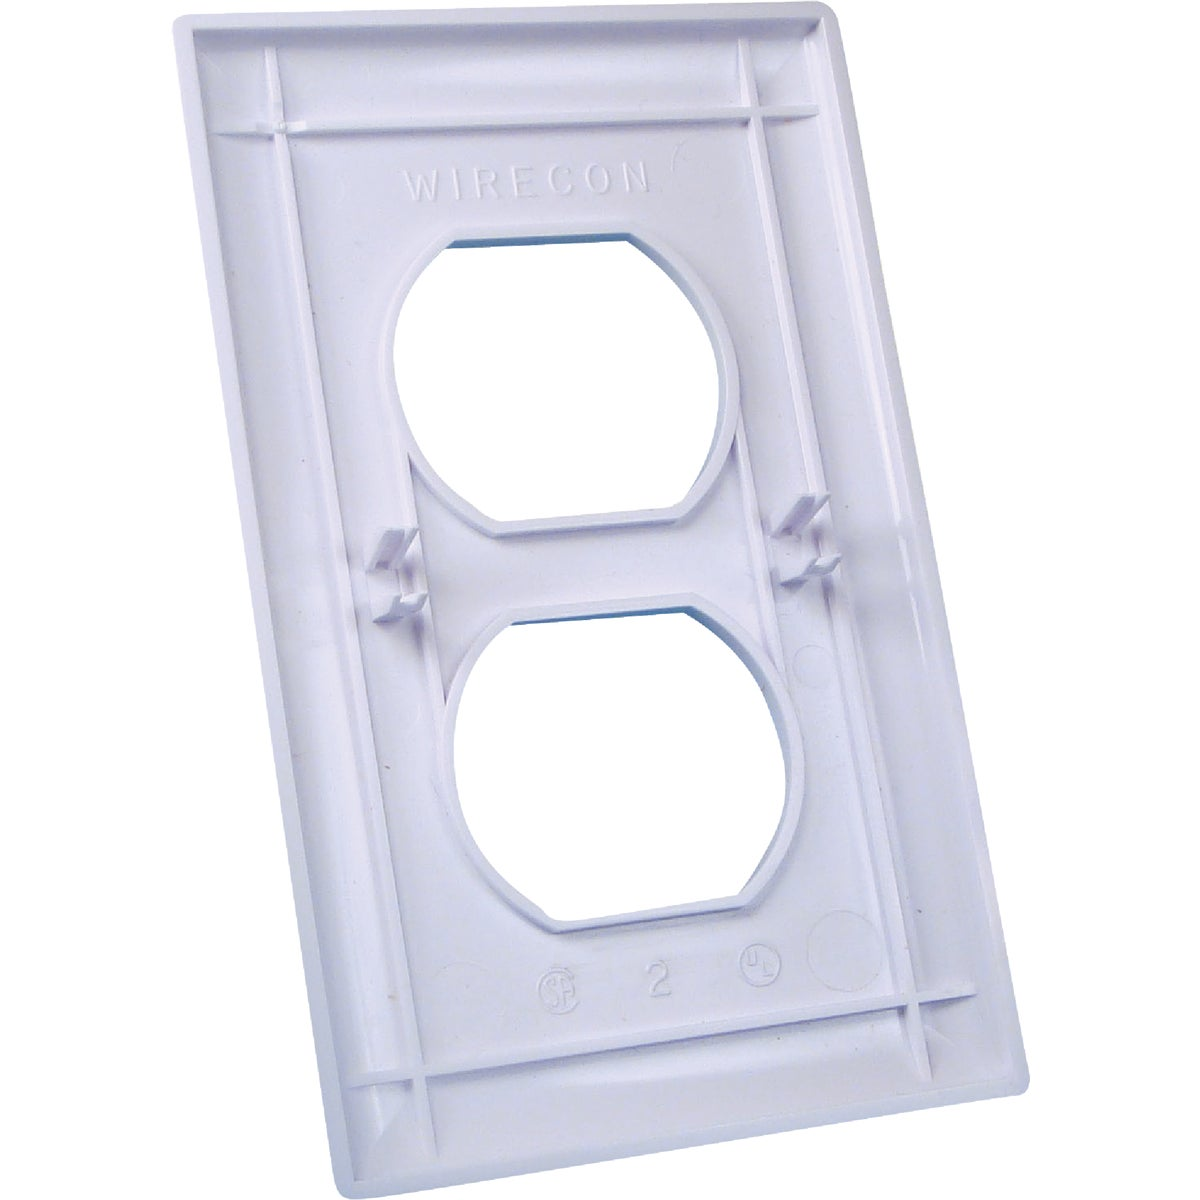 WH RECEPTACLE GANG PLATE - E-163C by U S Hardware